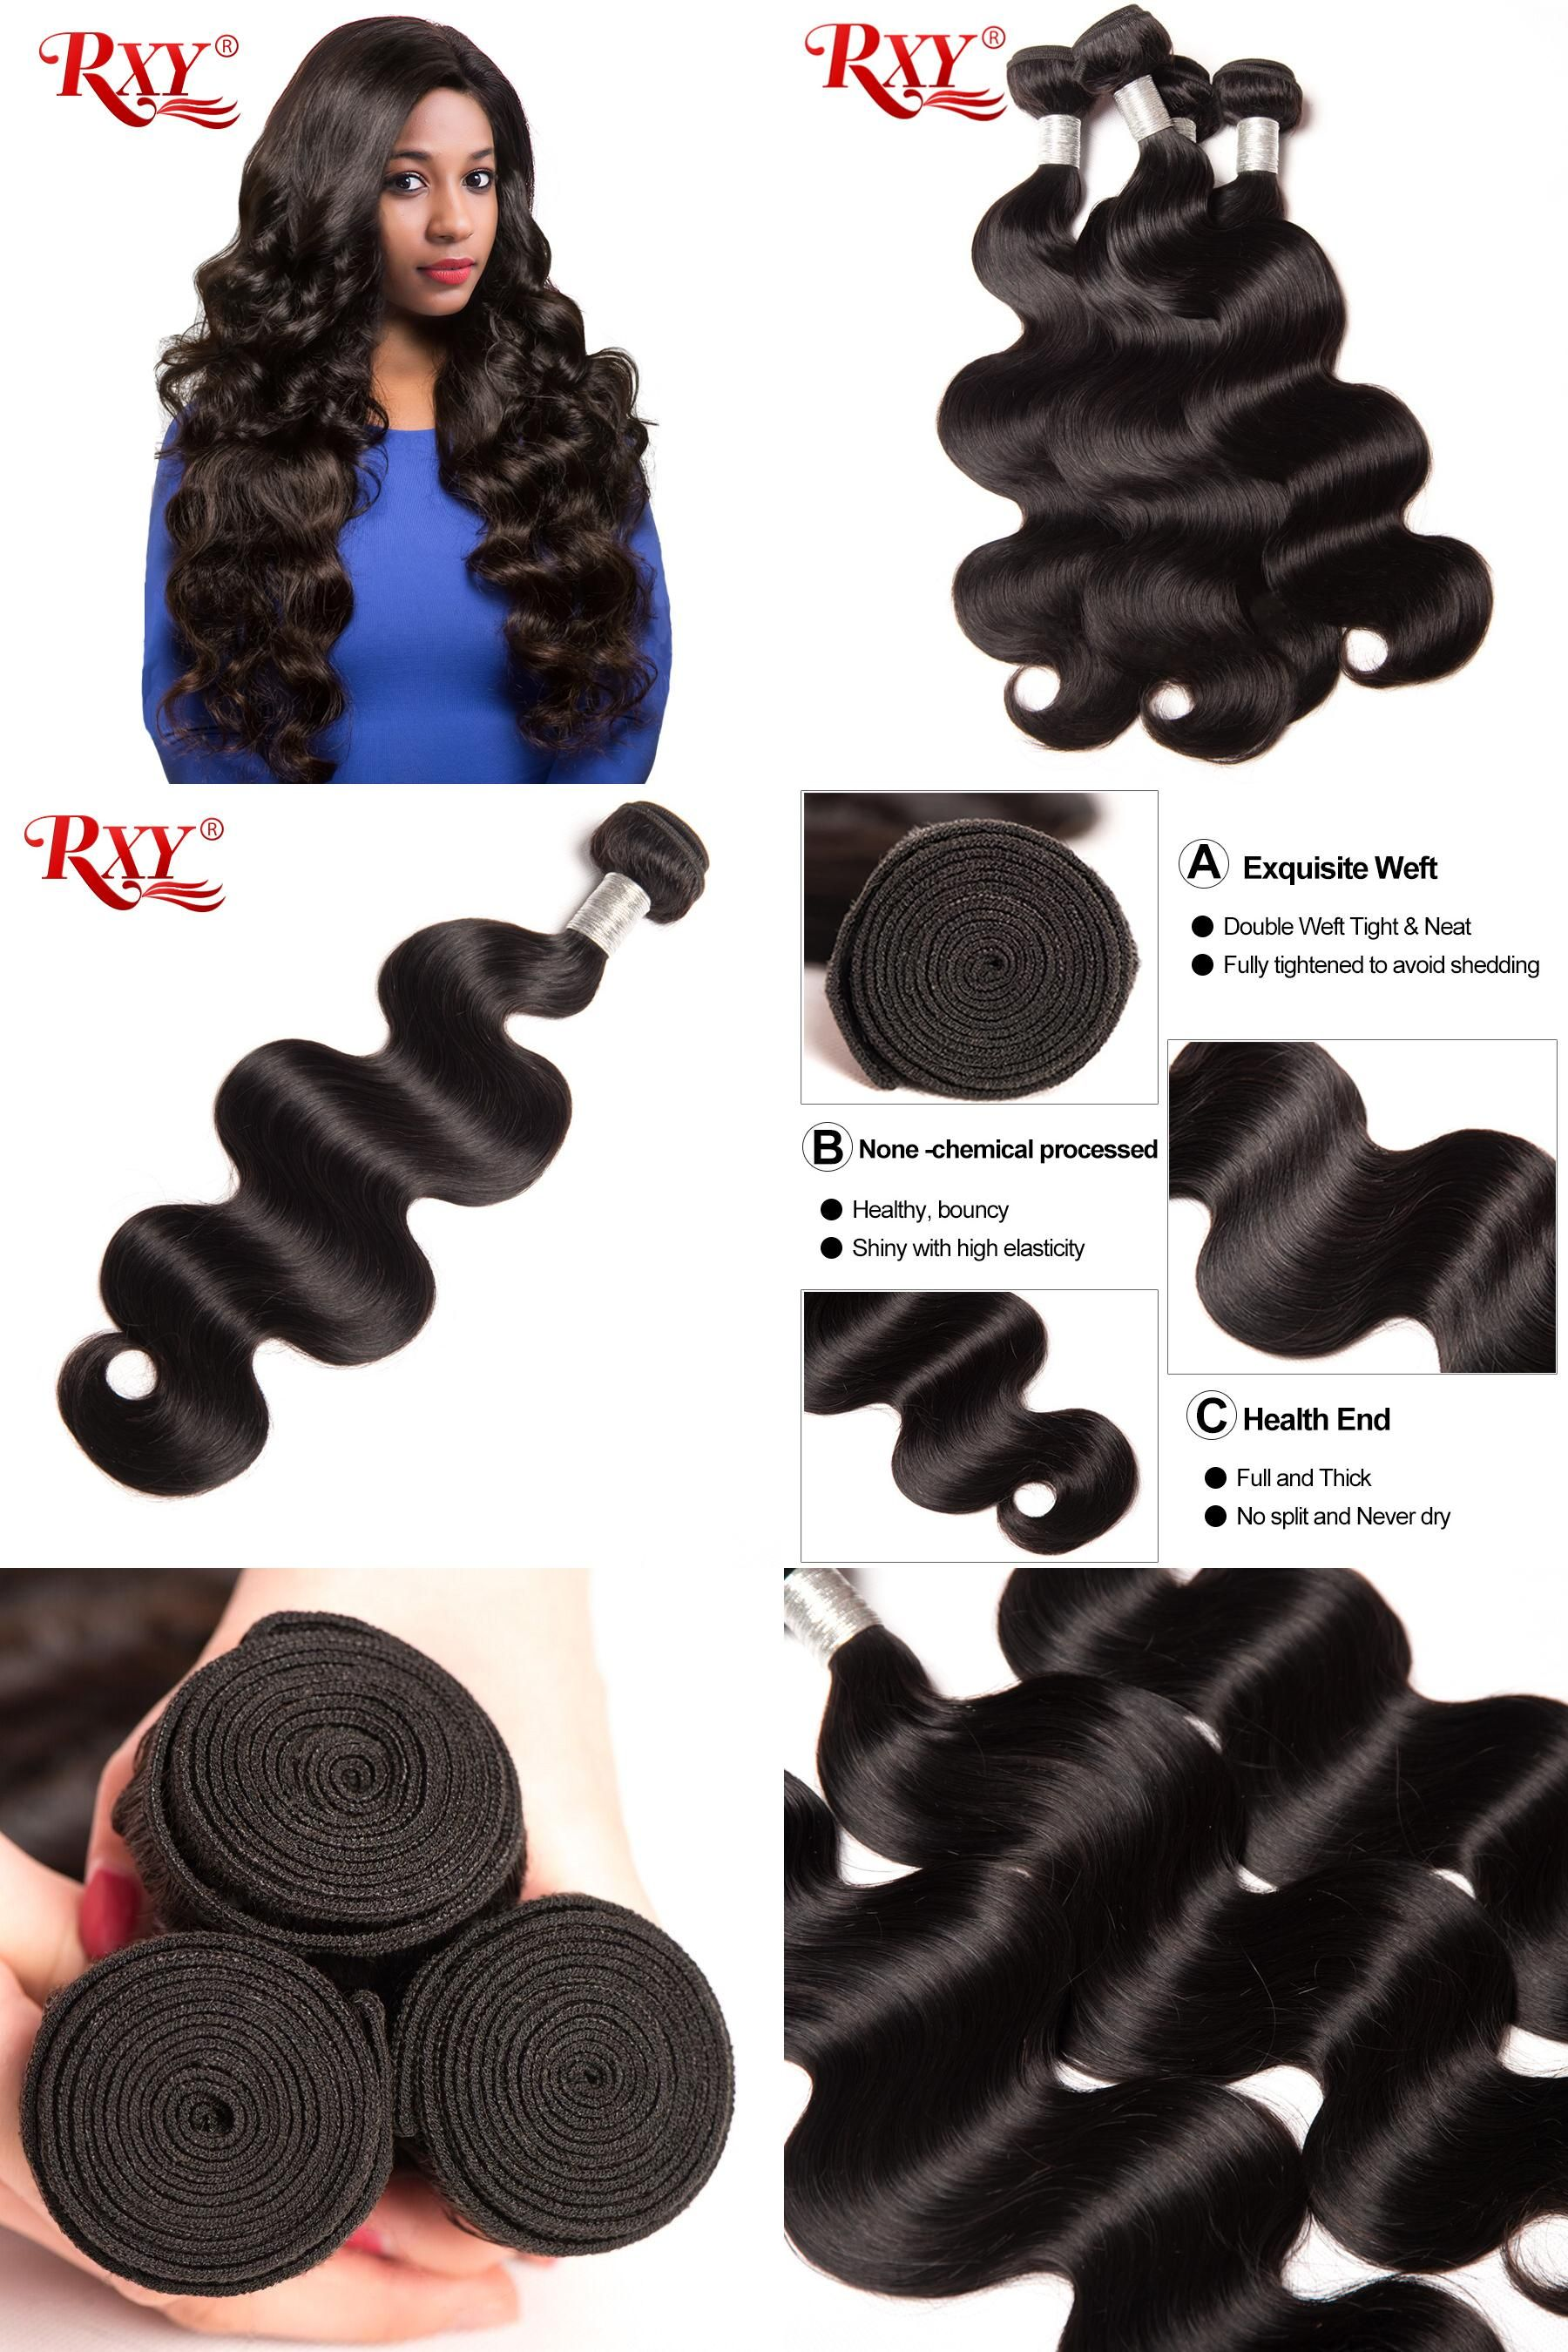 Visit To Buy Rxy Brazilian Body Wave Hair Extension 1pc 100